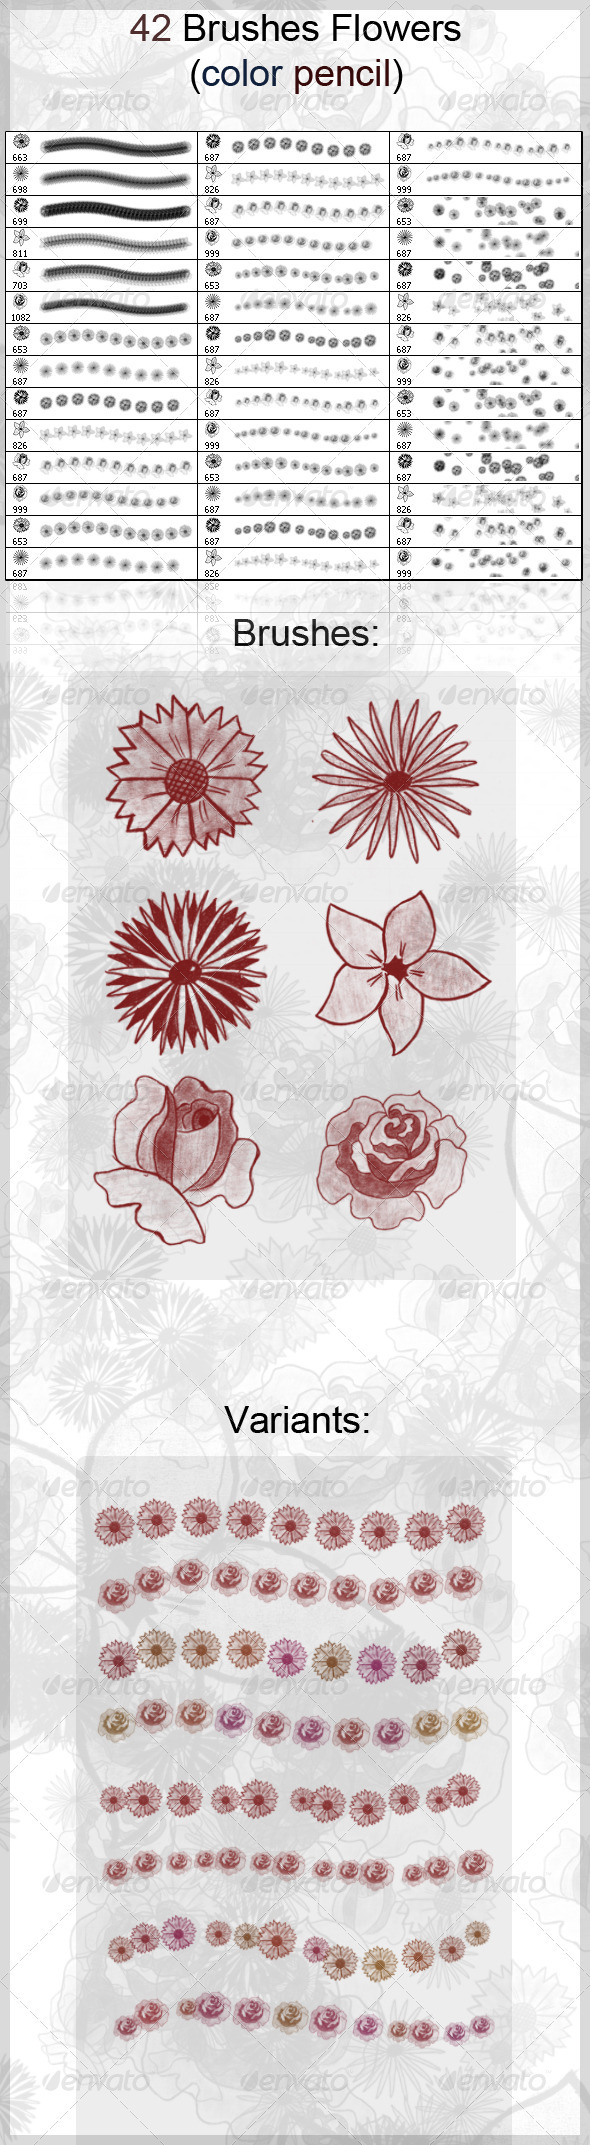 GraphicRiver 42 Brushes Flowers Color Pencil 3942663